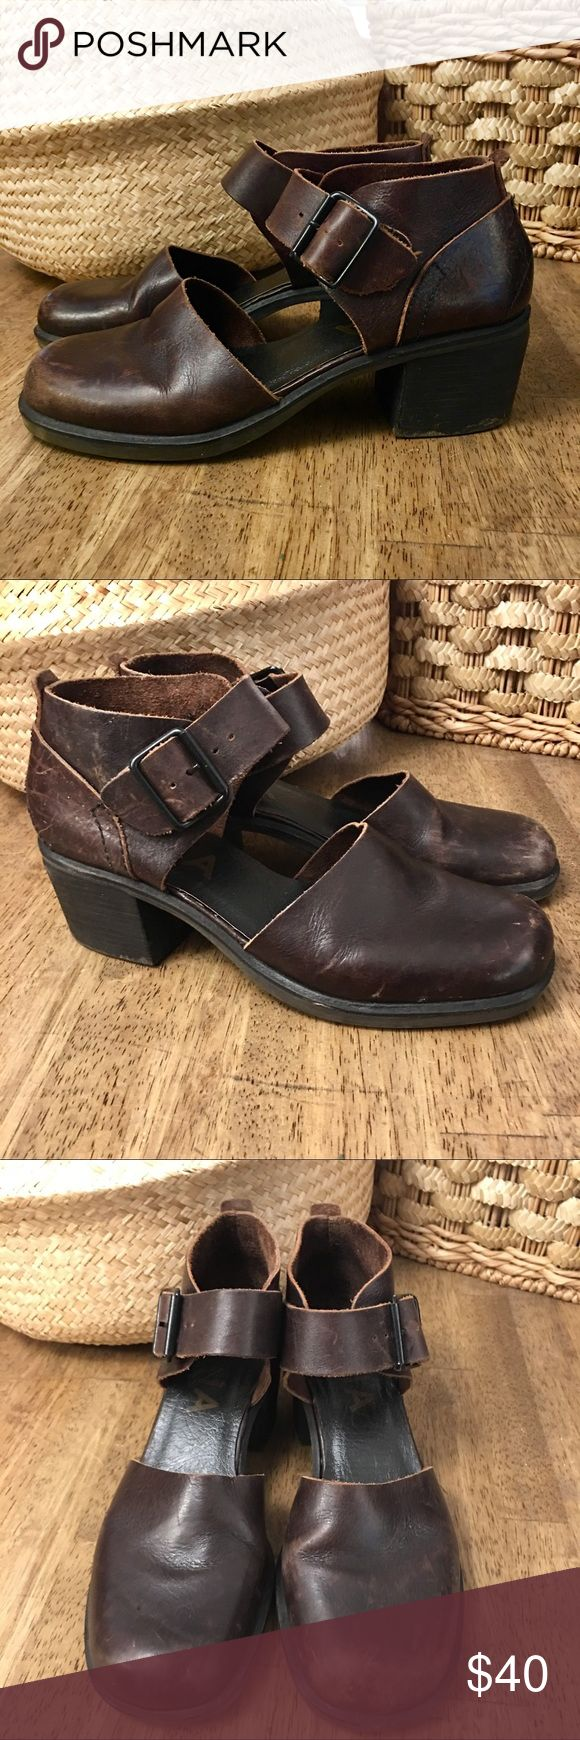 MIA Brown Leather Heeled Clog Sandal Size 7 1/2 M MIA Wide Strappy Heeled Clog. I saw these and made that noise only women make when they see the perfect, beautiful, something. Alas, they weren't my size. But they are soooo cute! Size 7.5 M MIA Shoes Mules & Clogs